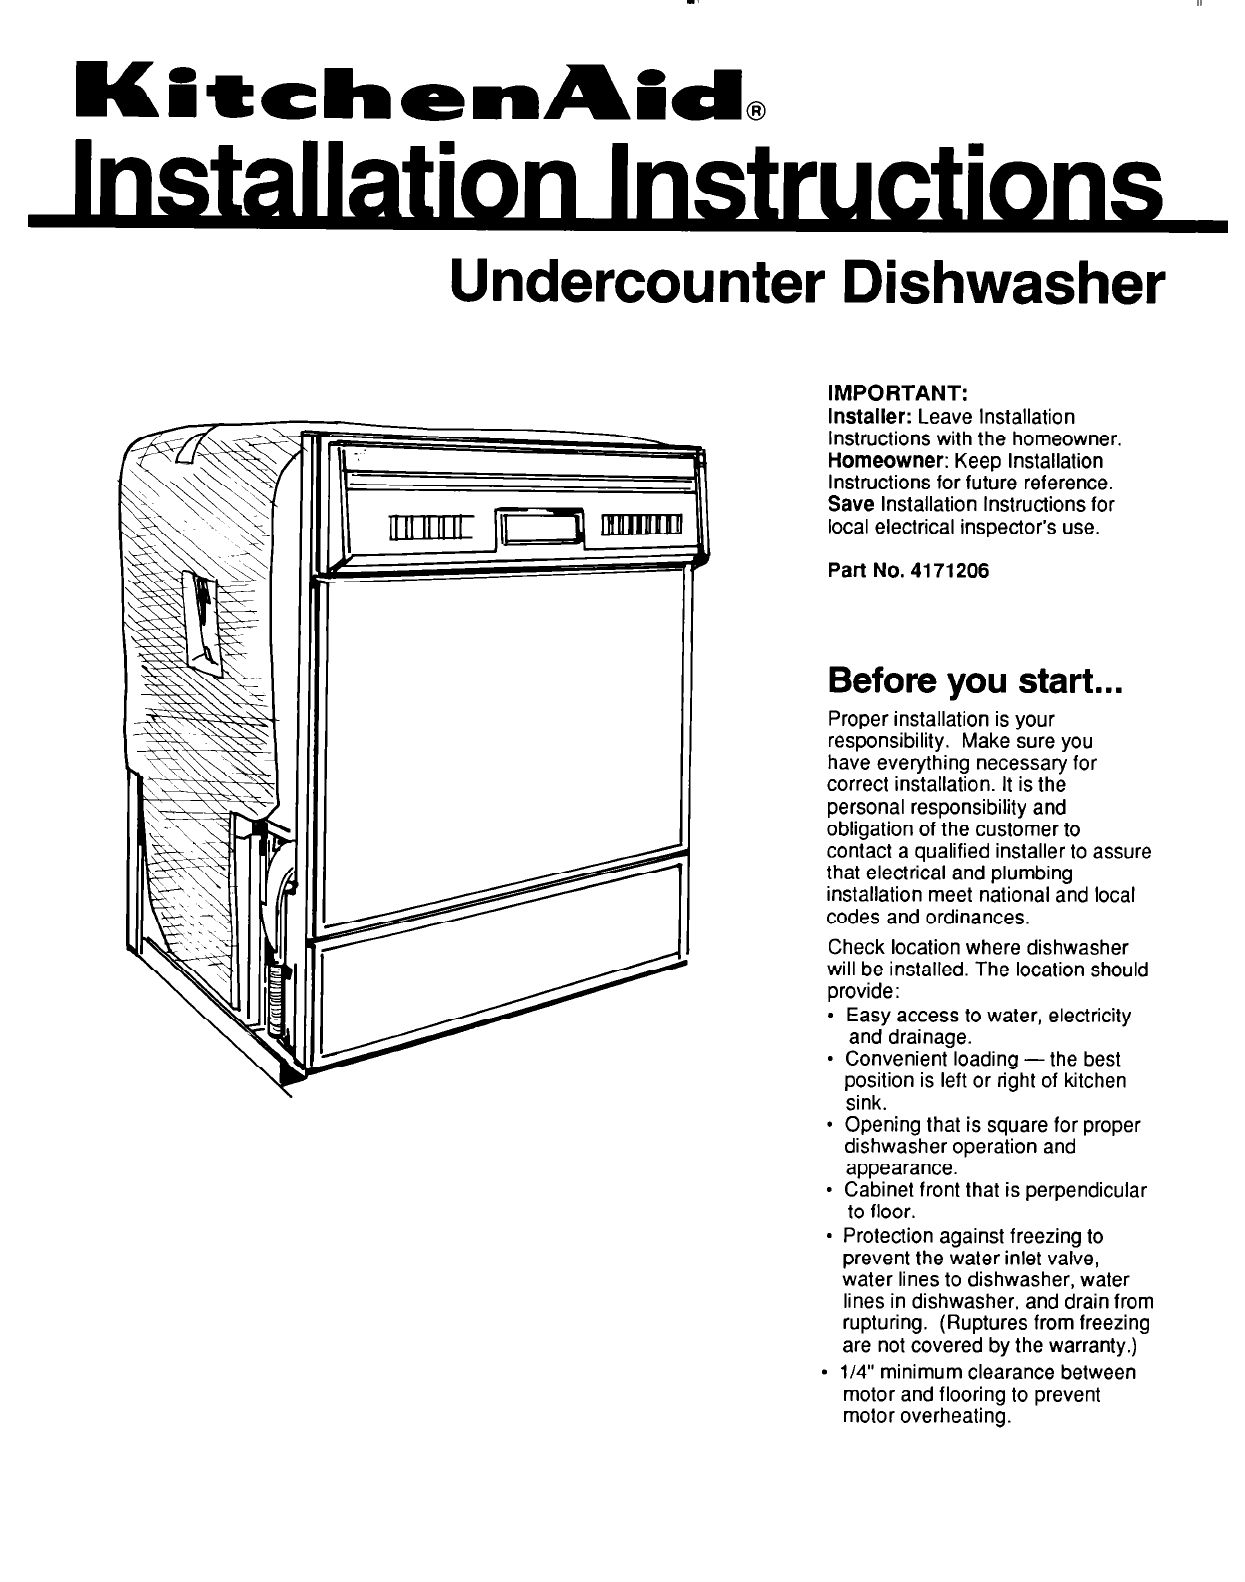 Kitchenaid Dishwasher Dishwasher User Guide Manual Guide